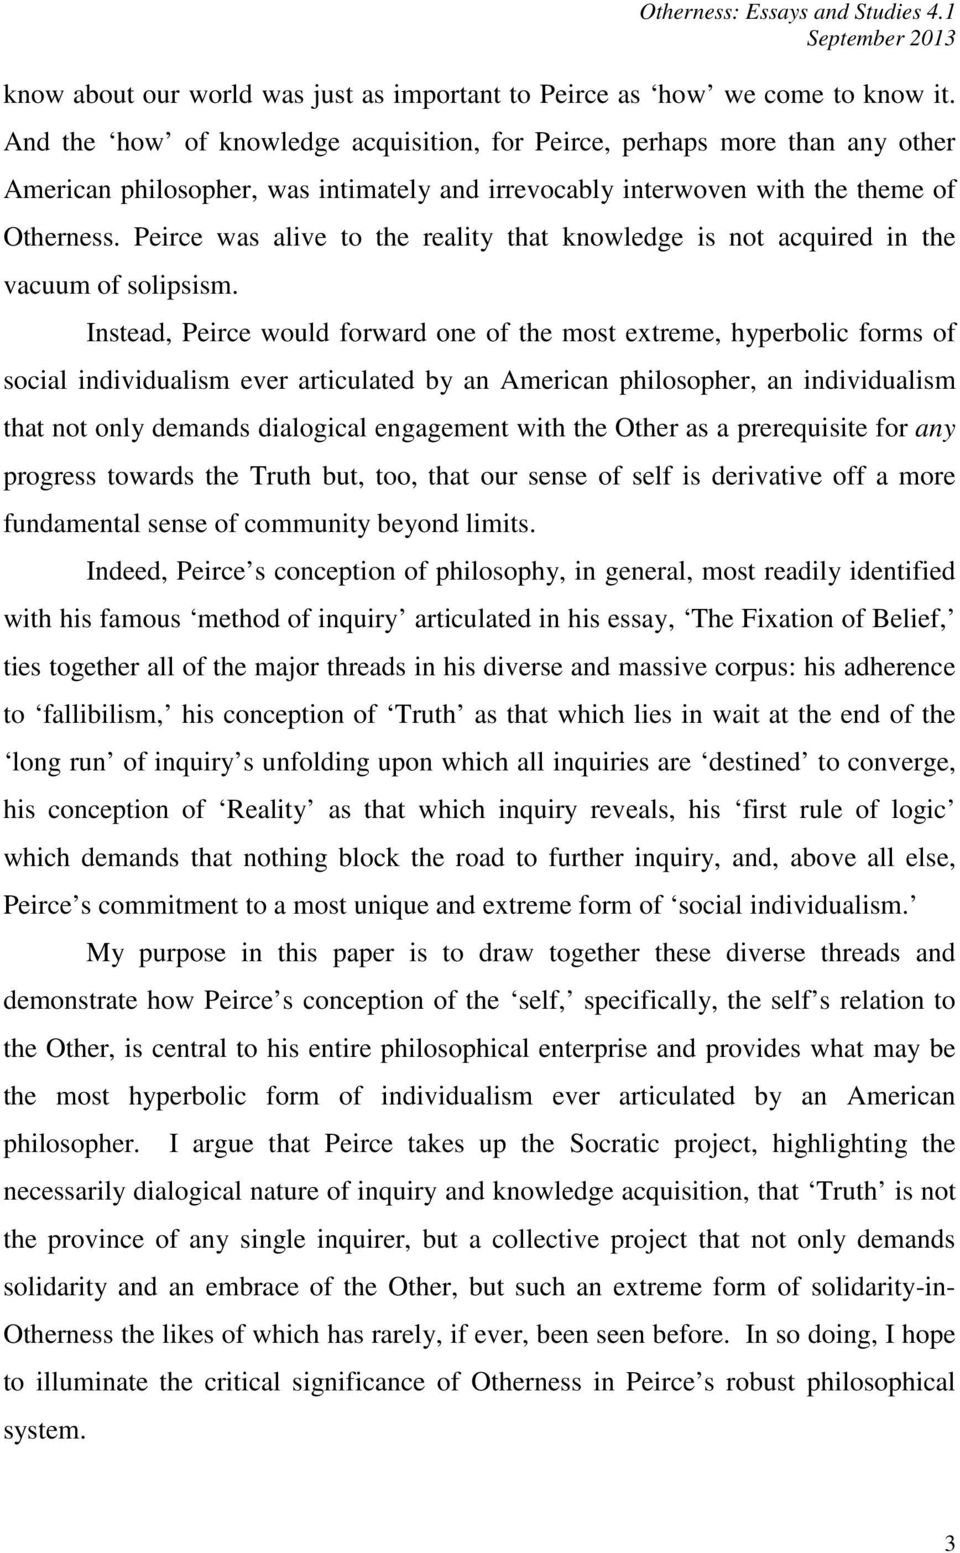 Peirce was alive to the reality that knowledge is not acquired in the vacuum of solipsism.